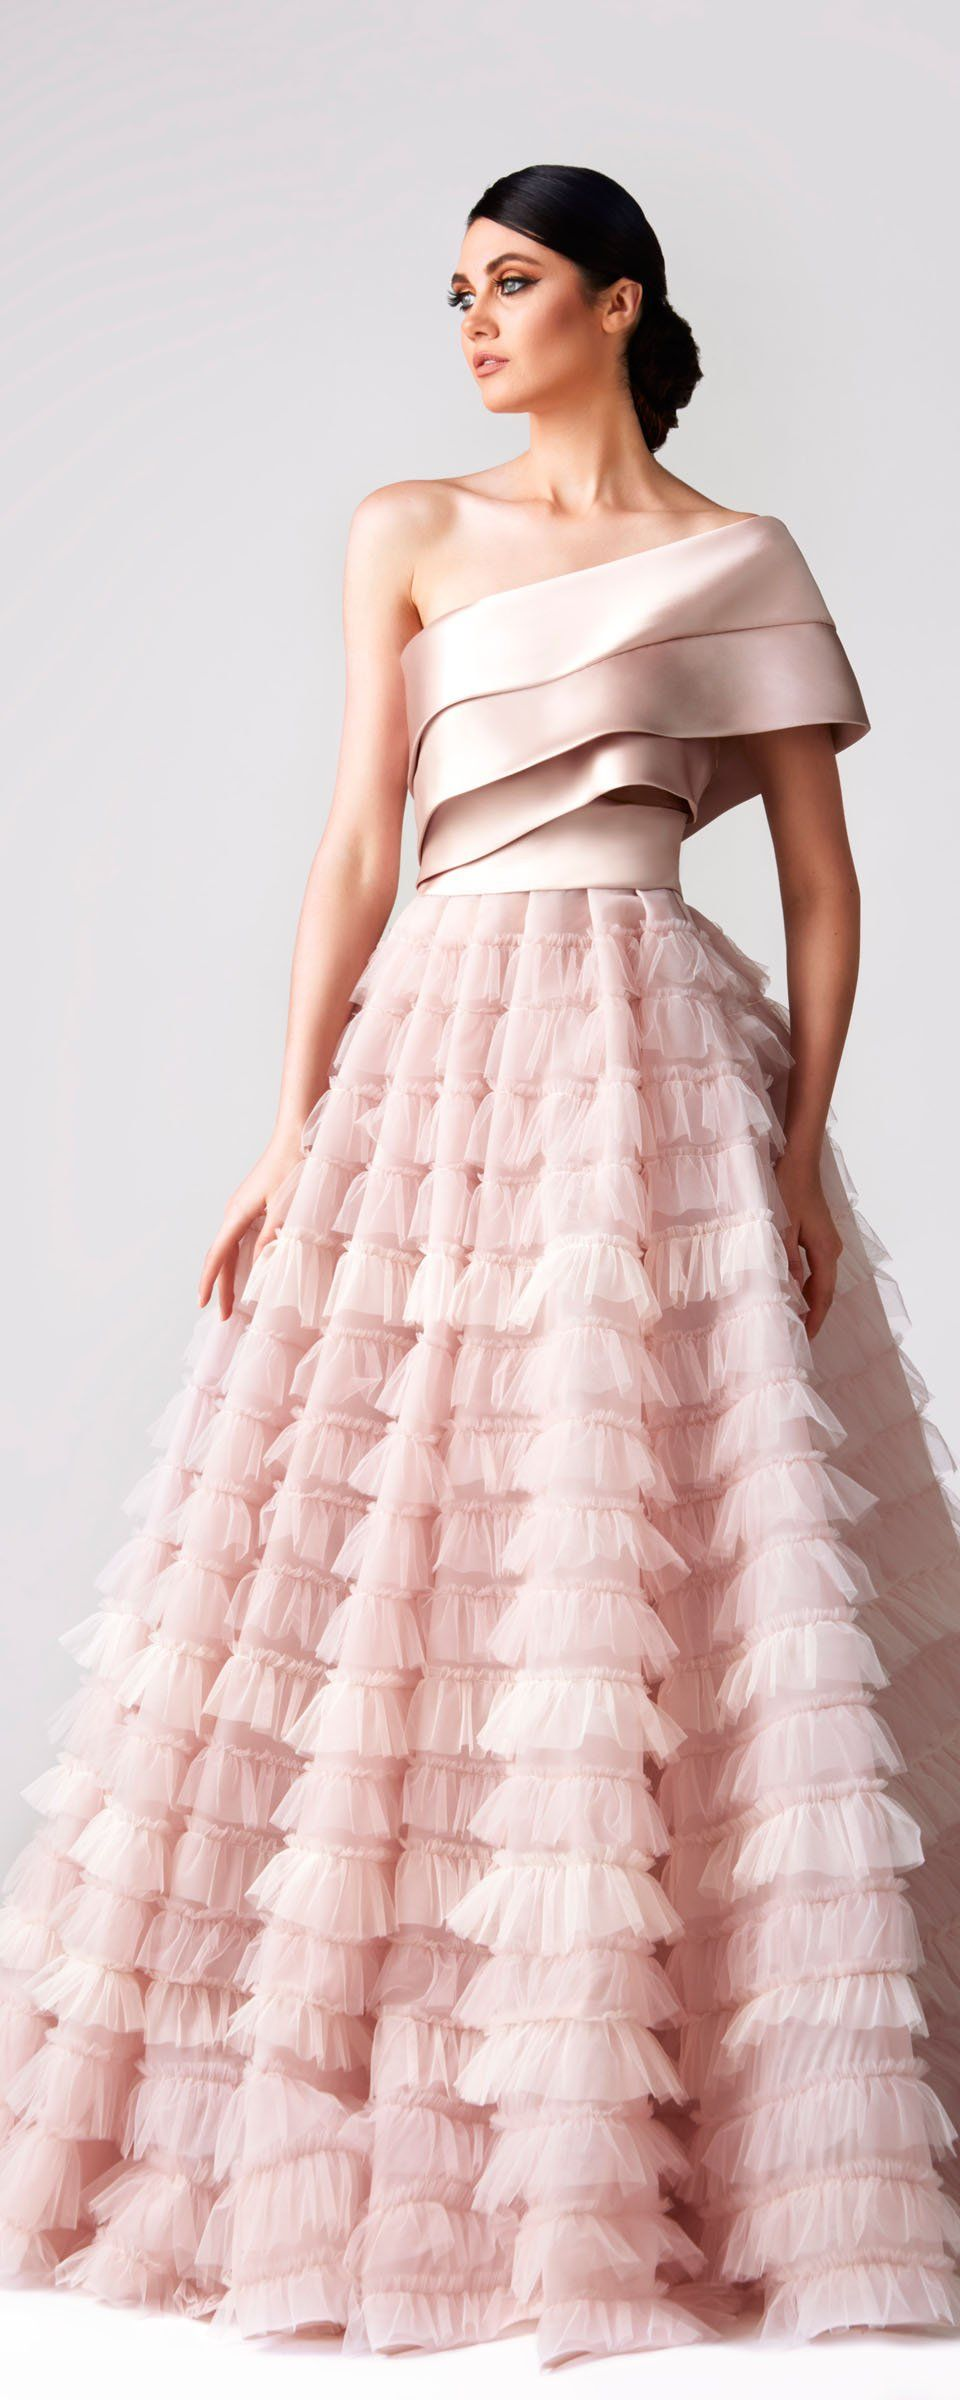 Formal pink dresses for women  Fadwa Baalbaki Springsummer   Couture  Outfit Inspirations